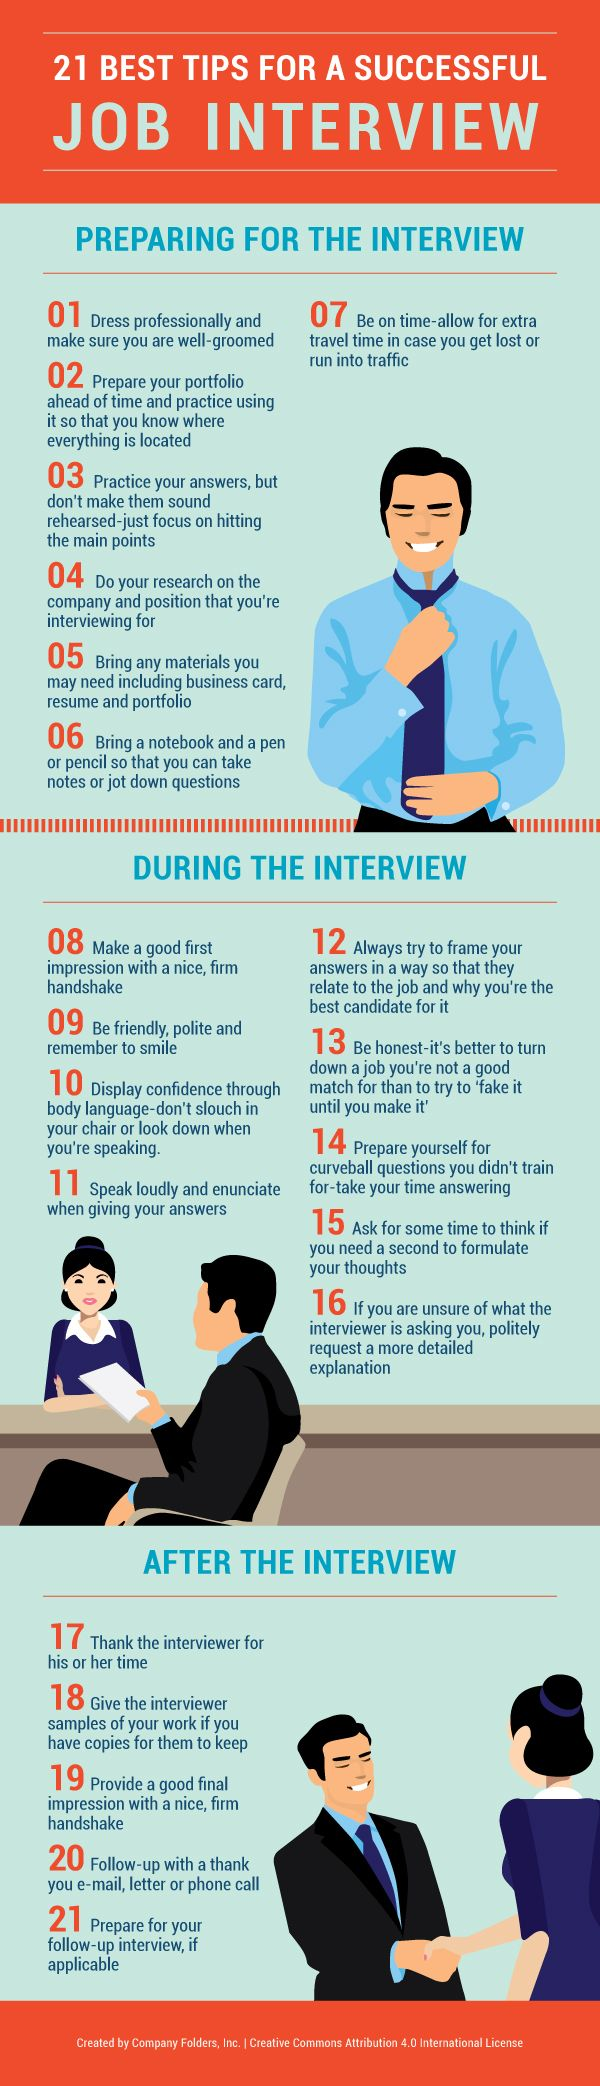 best ideas about job interviews job interview 21 tips for a successful job interview includes advice that is applicable to before during and after your employment interview